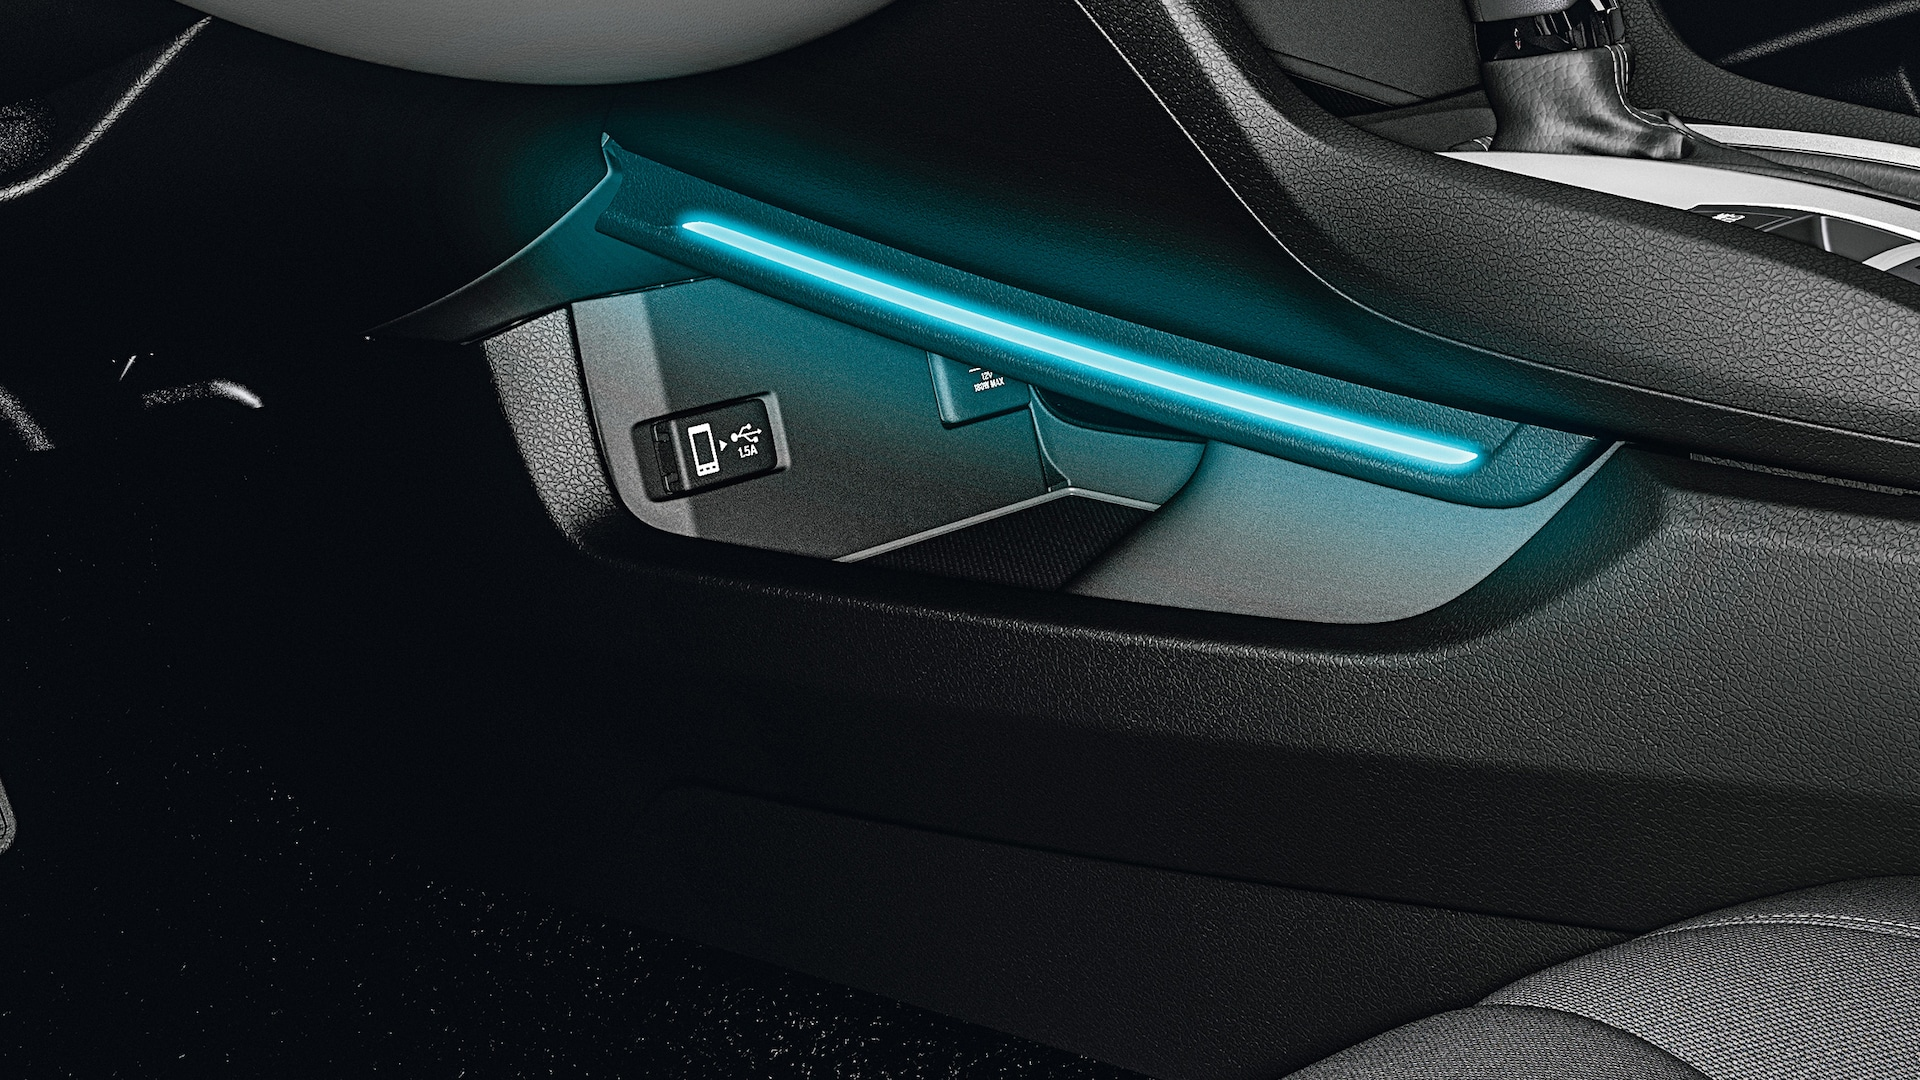 Illuminated driver-side console detail in the 2021 Honda Civic Sedan.